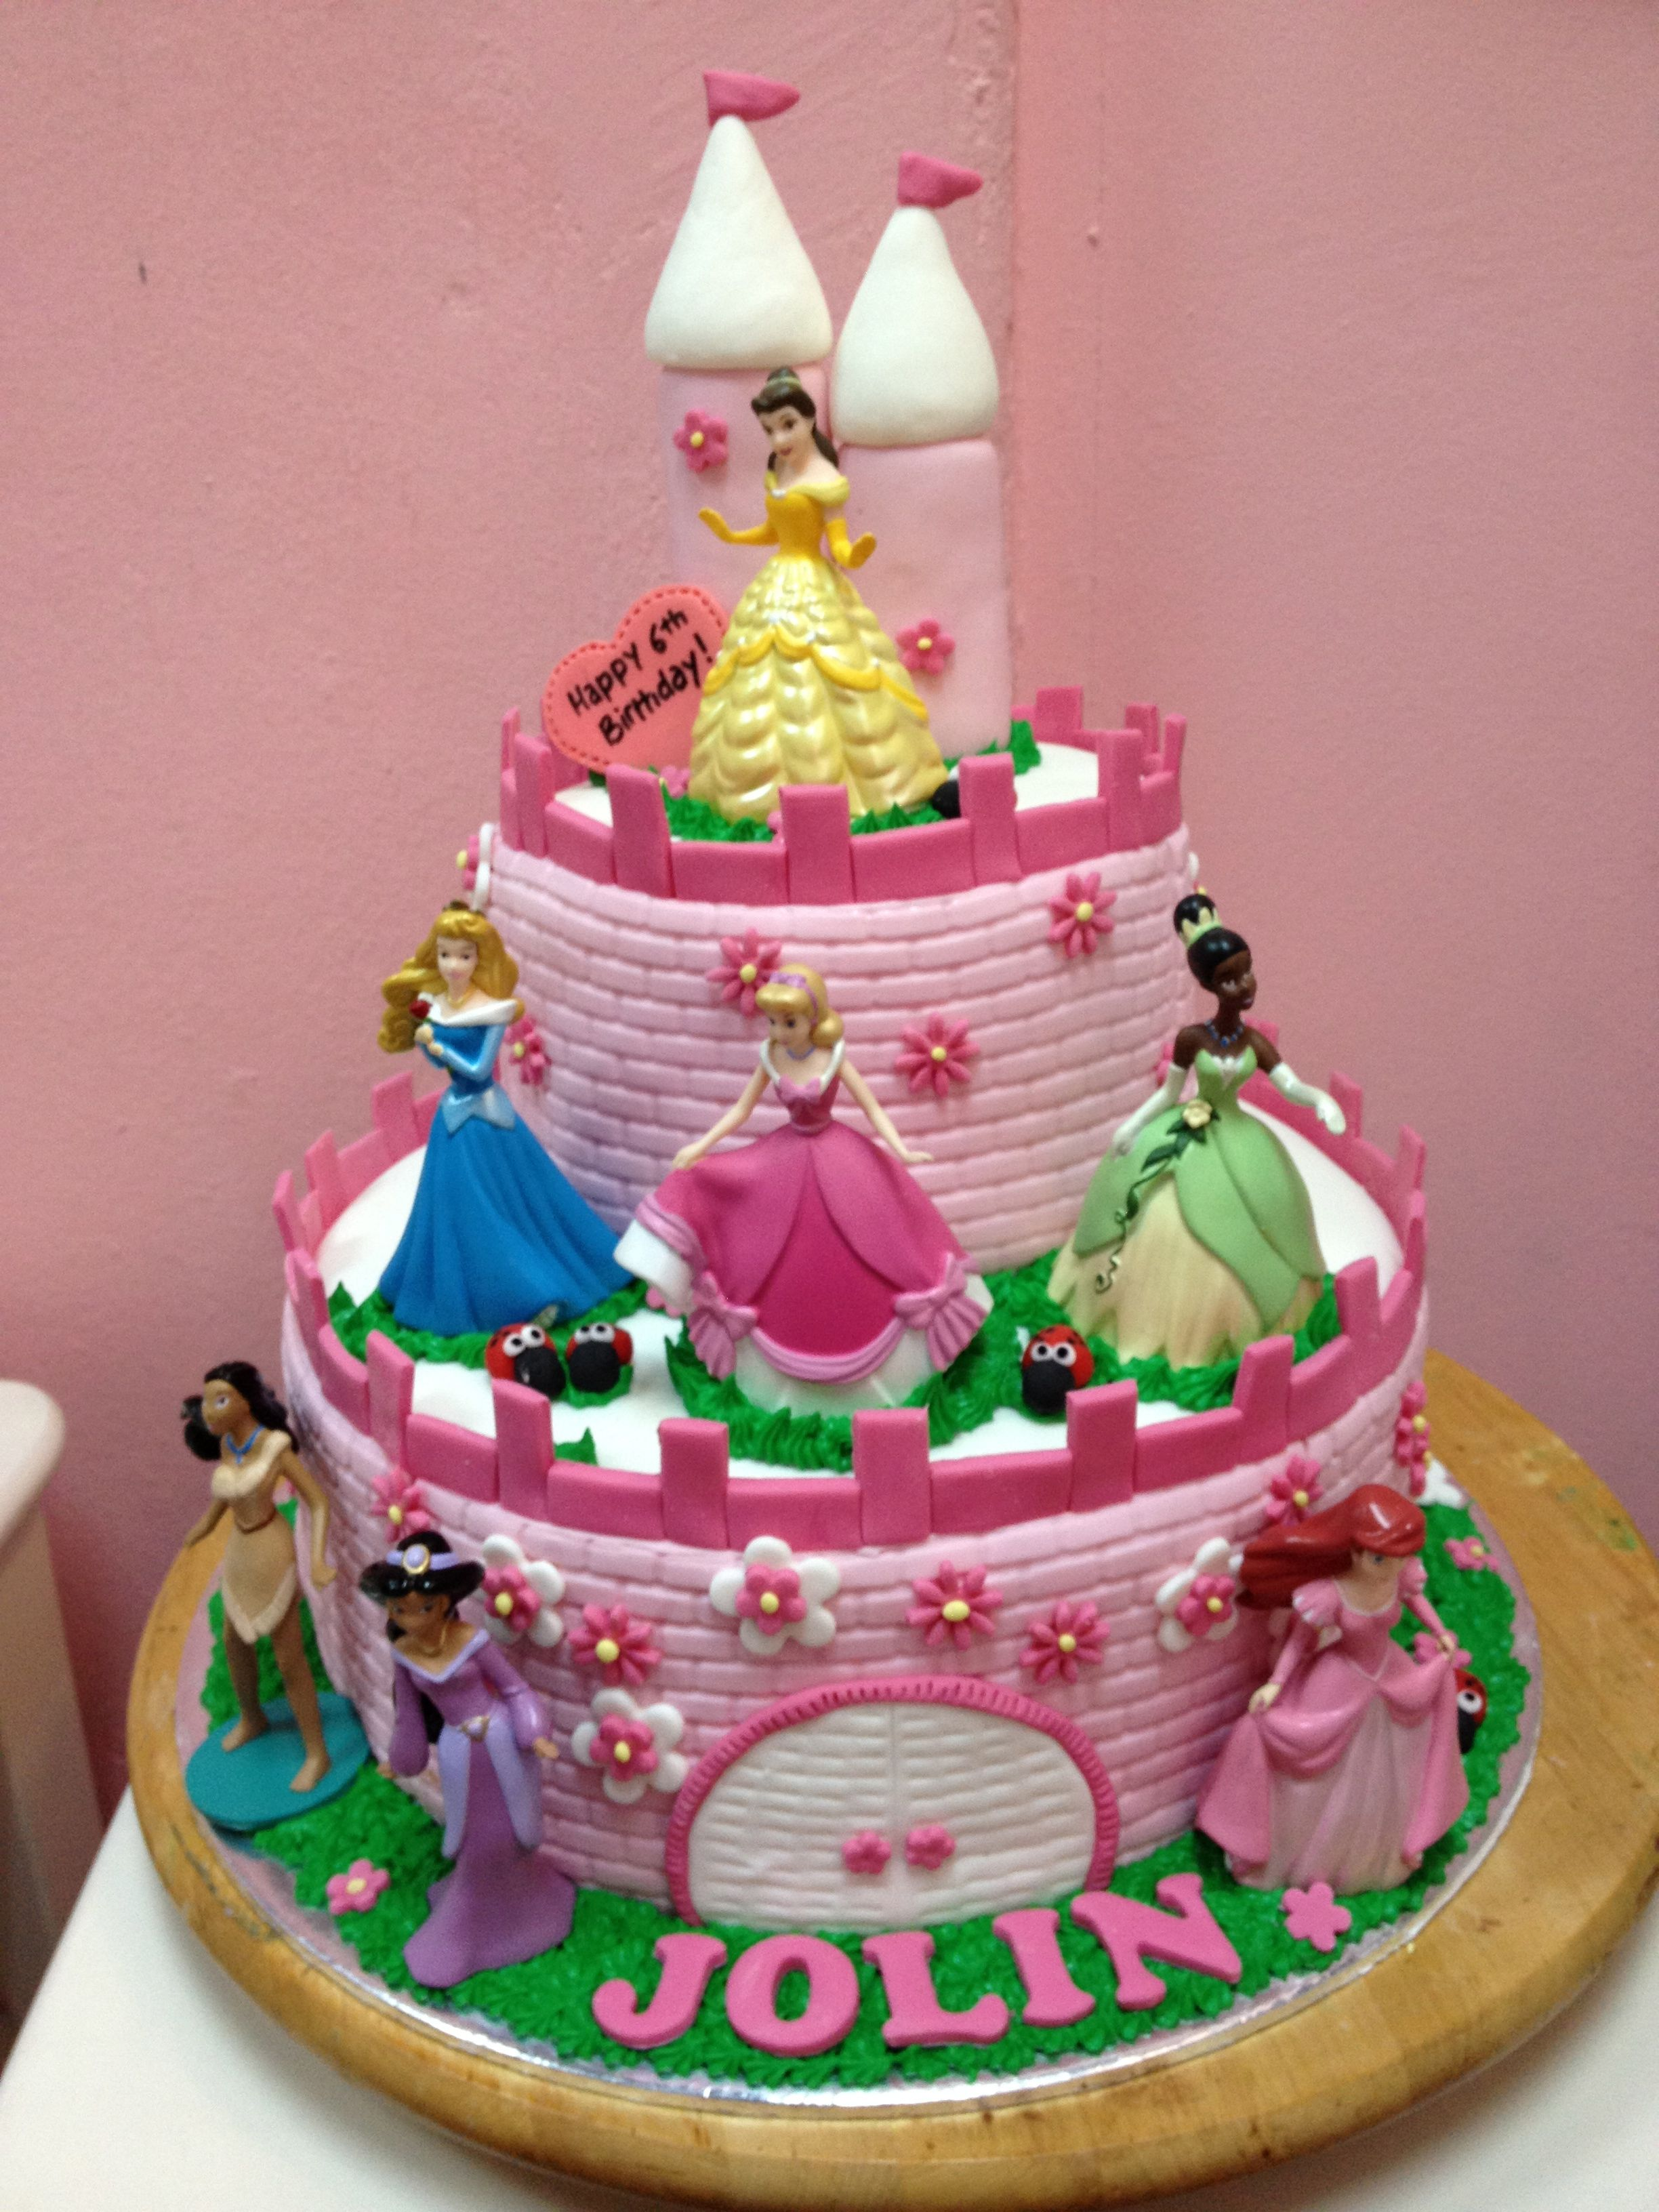 Disney Cake Designs Princesses : 2 tier princess castle cake with disney toppers provided ...